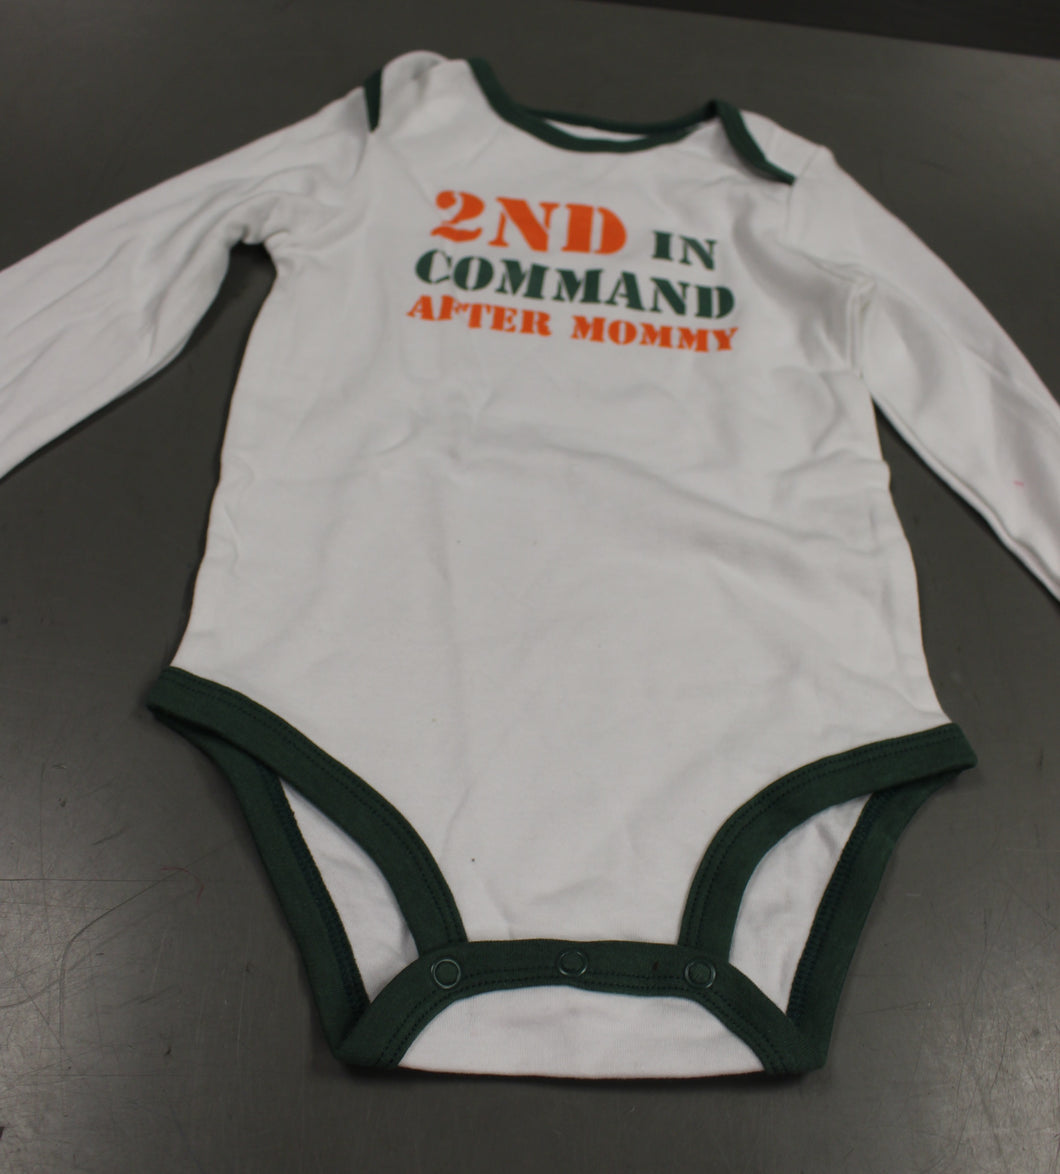 Carter's 2nd In Command After Mommy Onsie Bodysuit, 18 Months, New